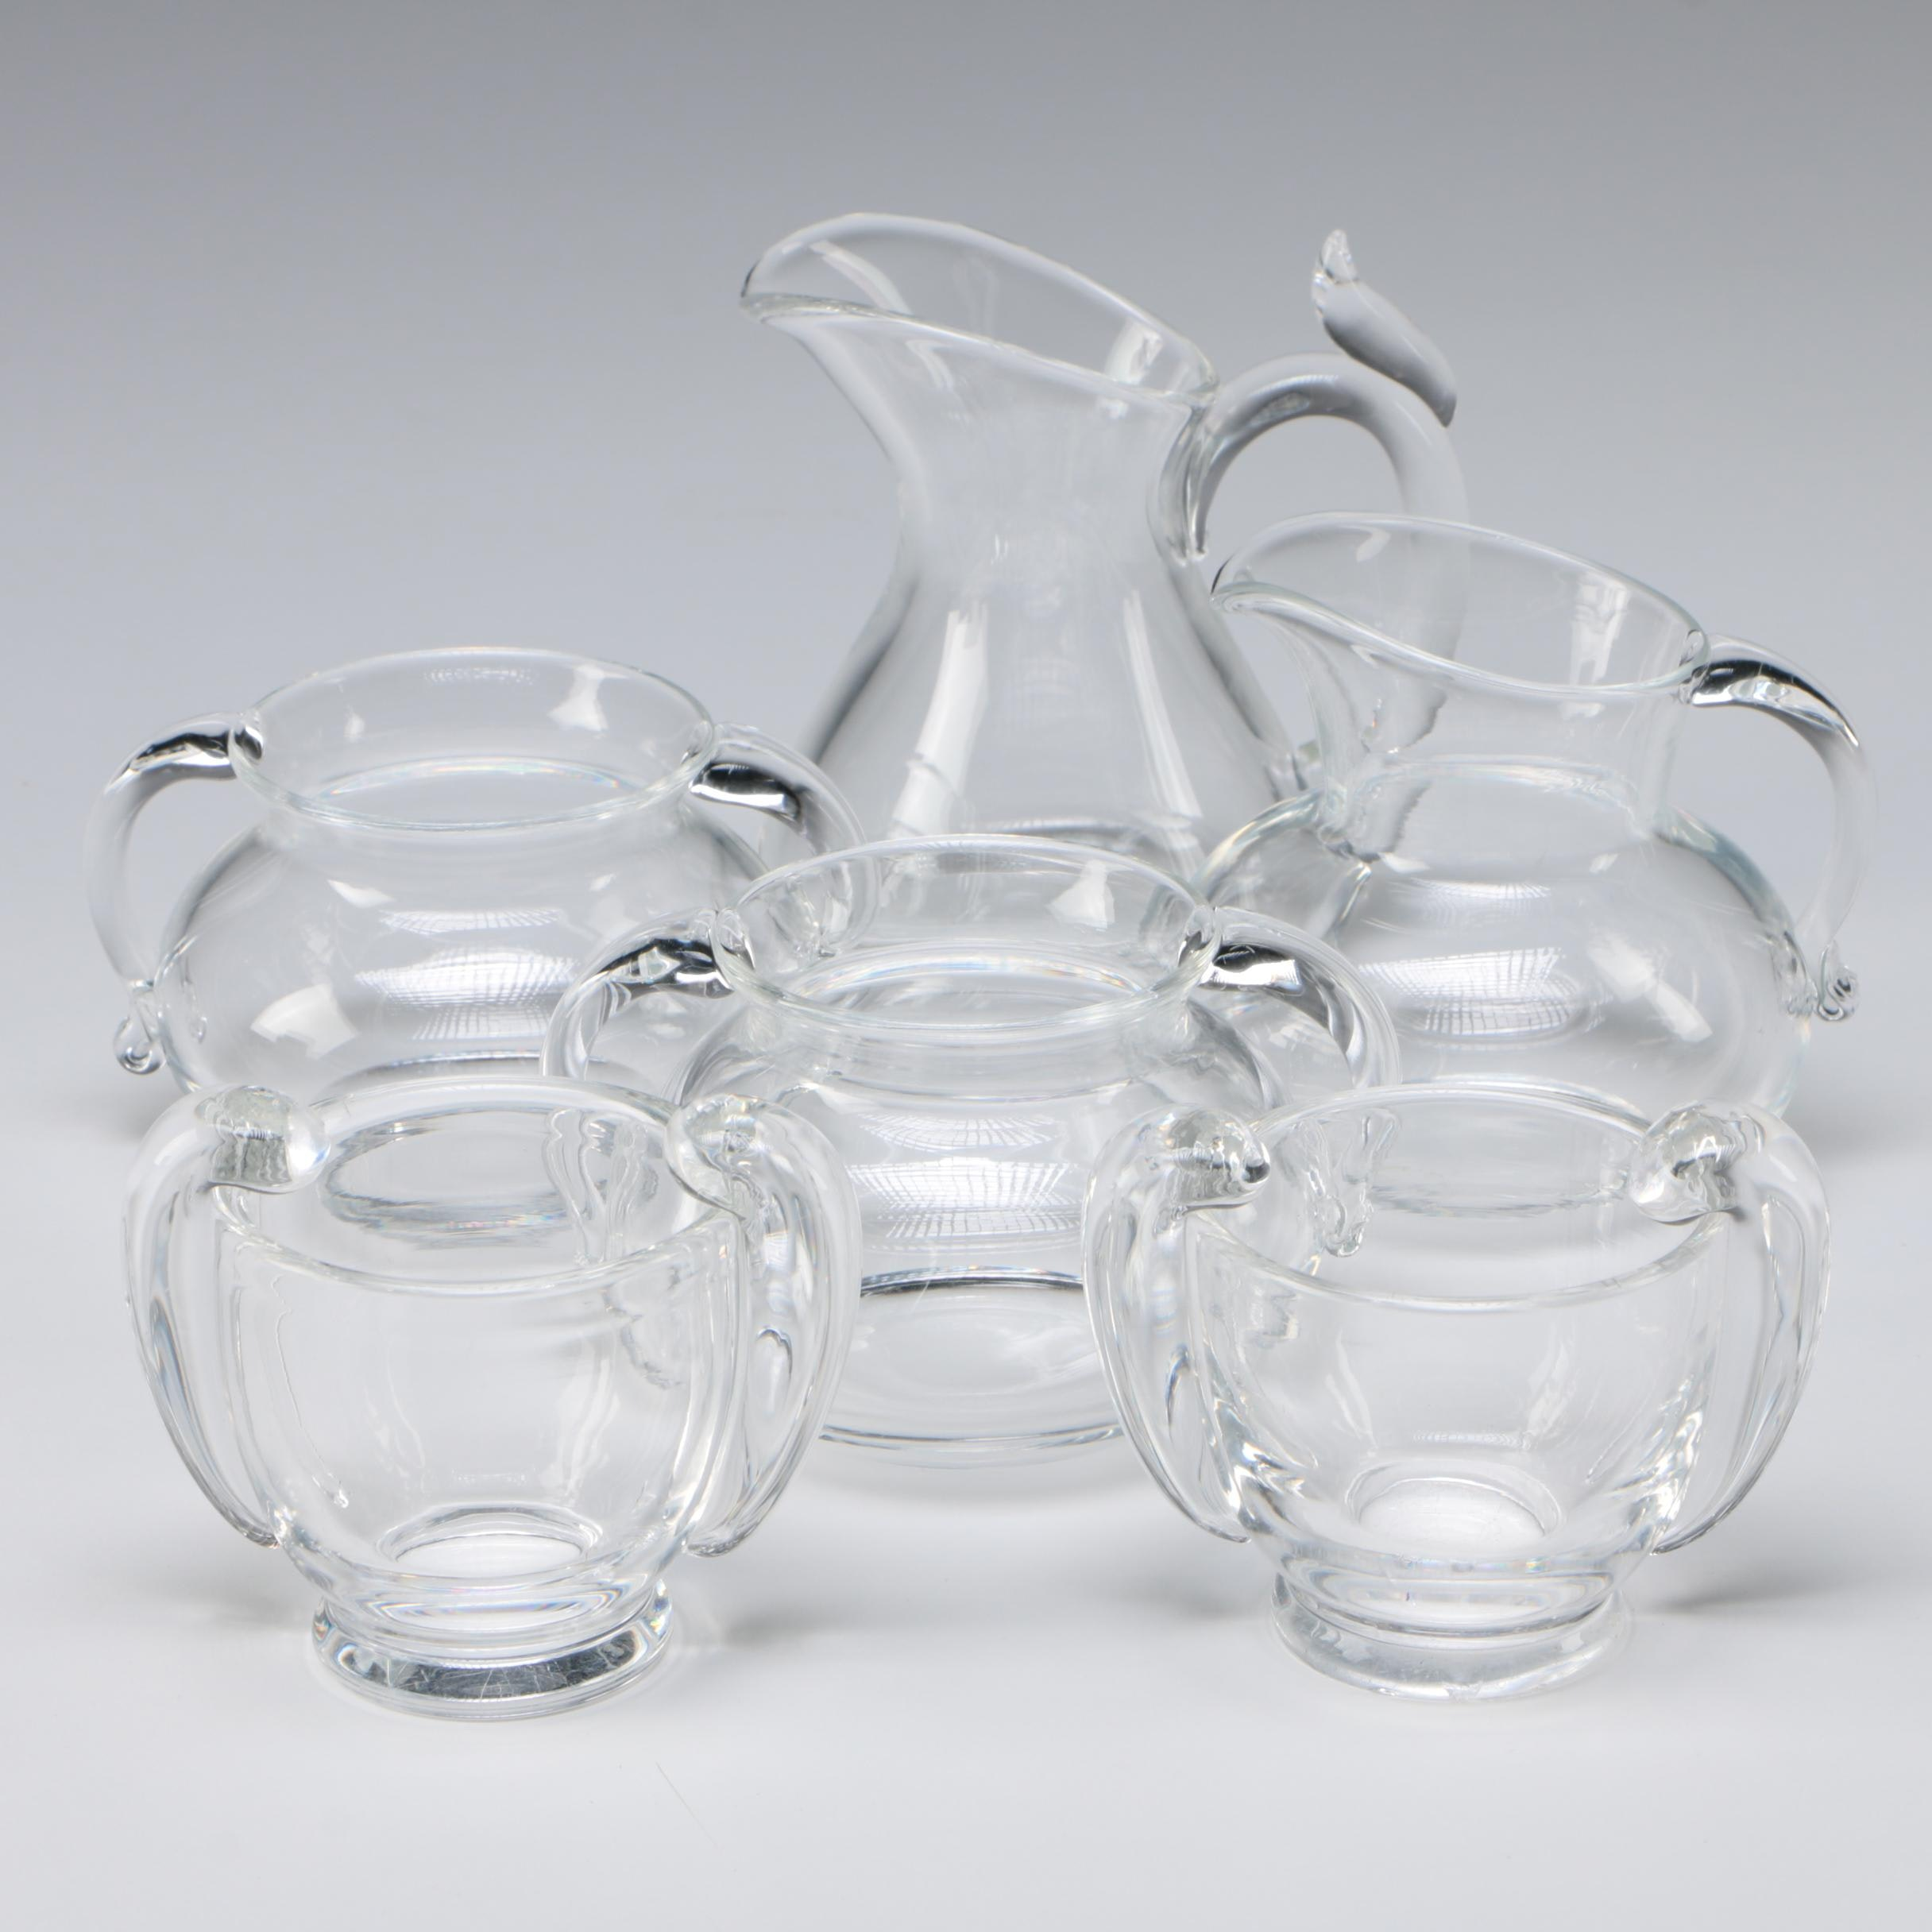 Steuben Art Glass Creamer and Sugar Bowls